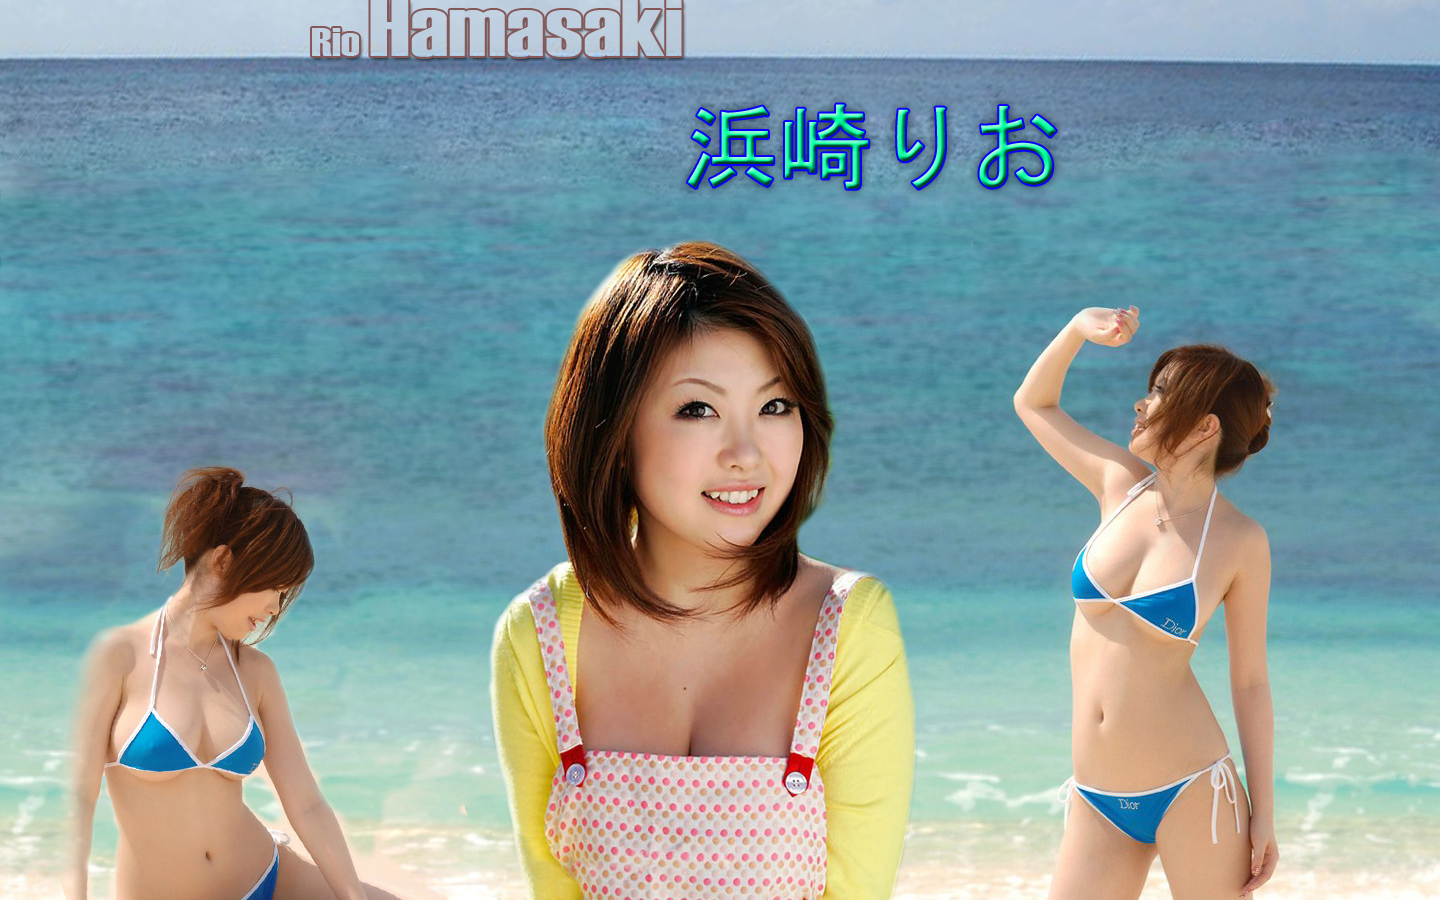 Rio Hamasaki Posted by David Weaver at 12:16 AM 0 comments